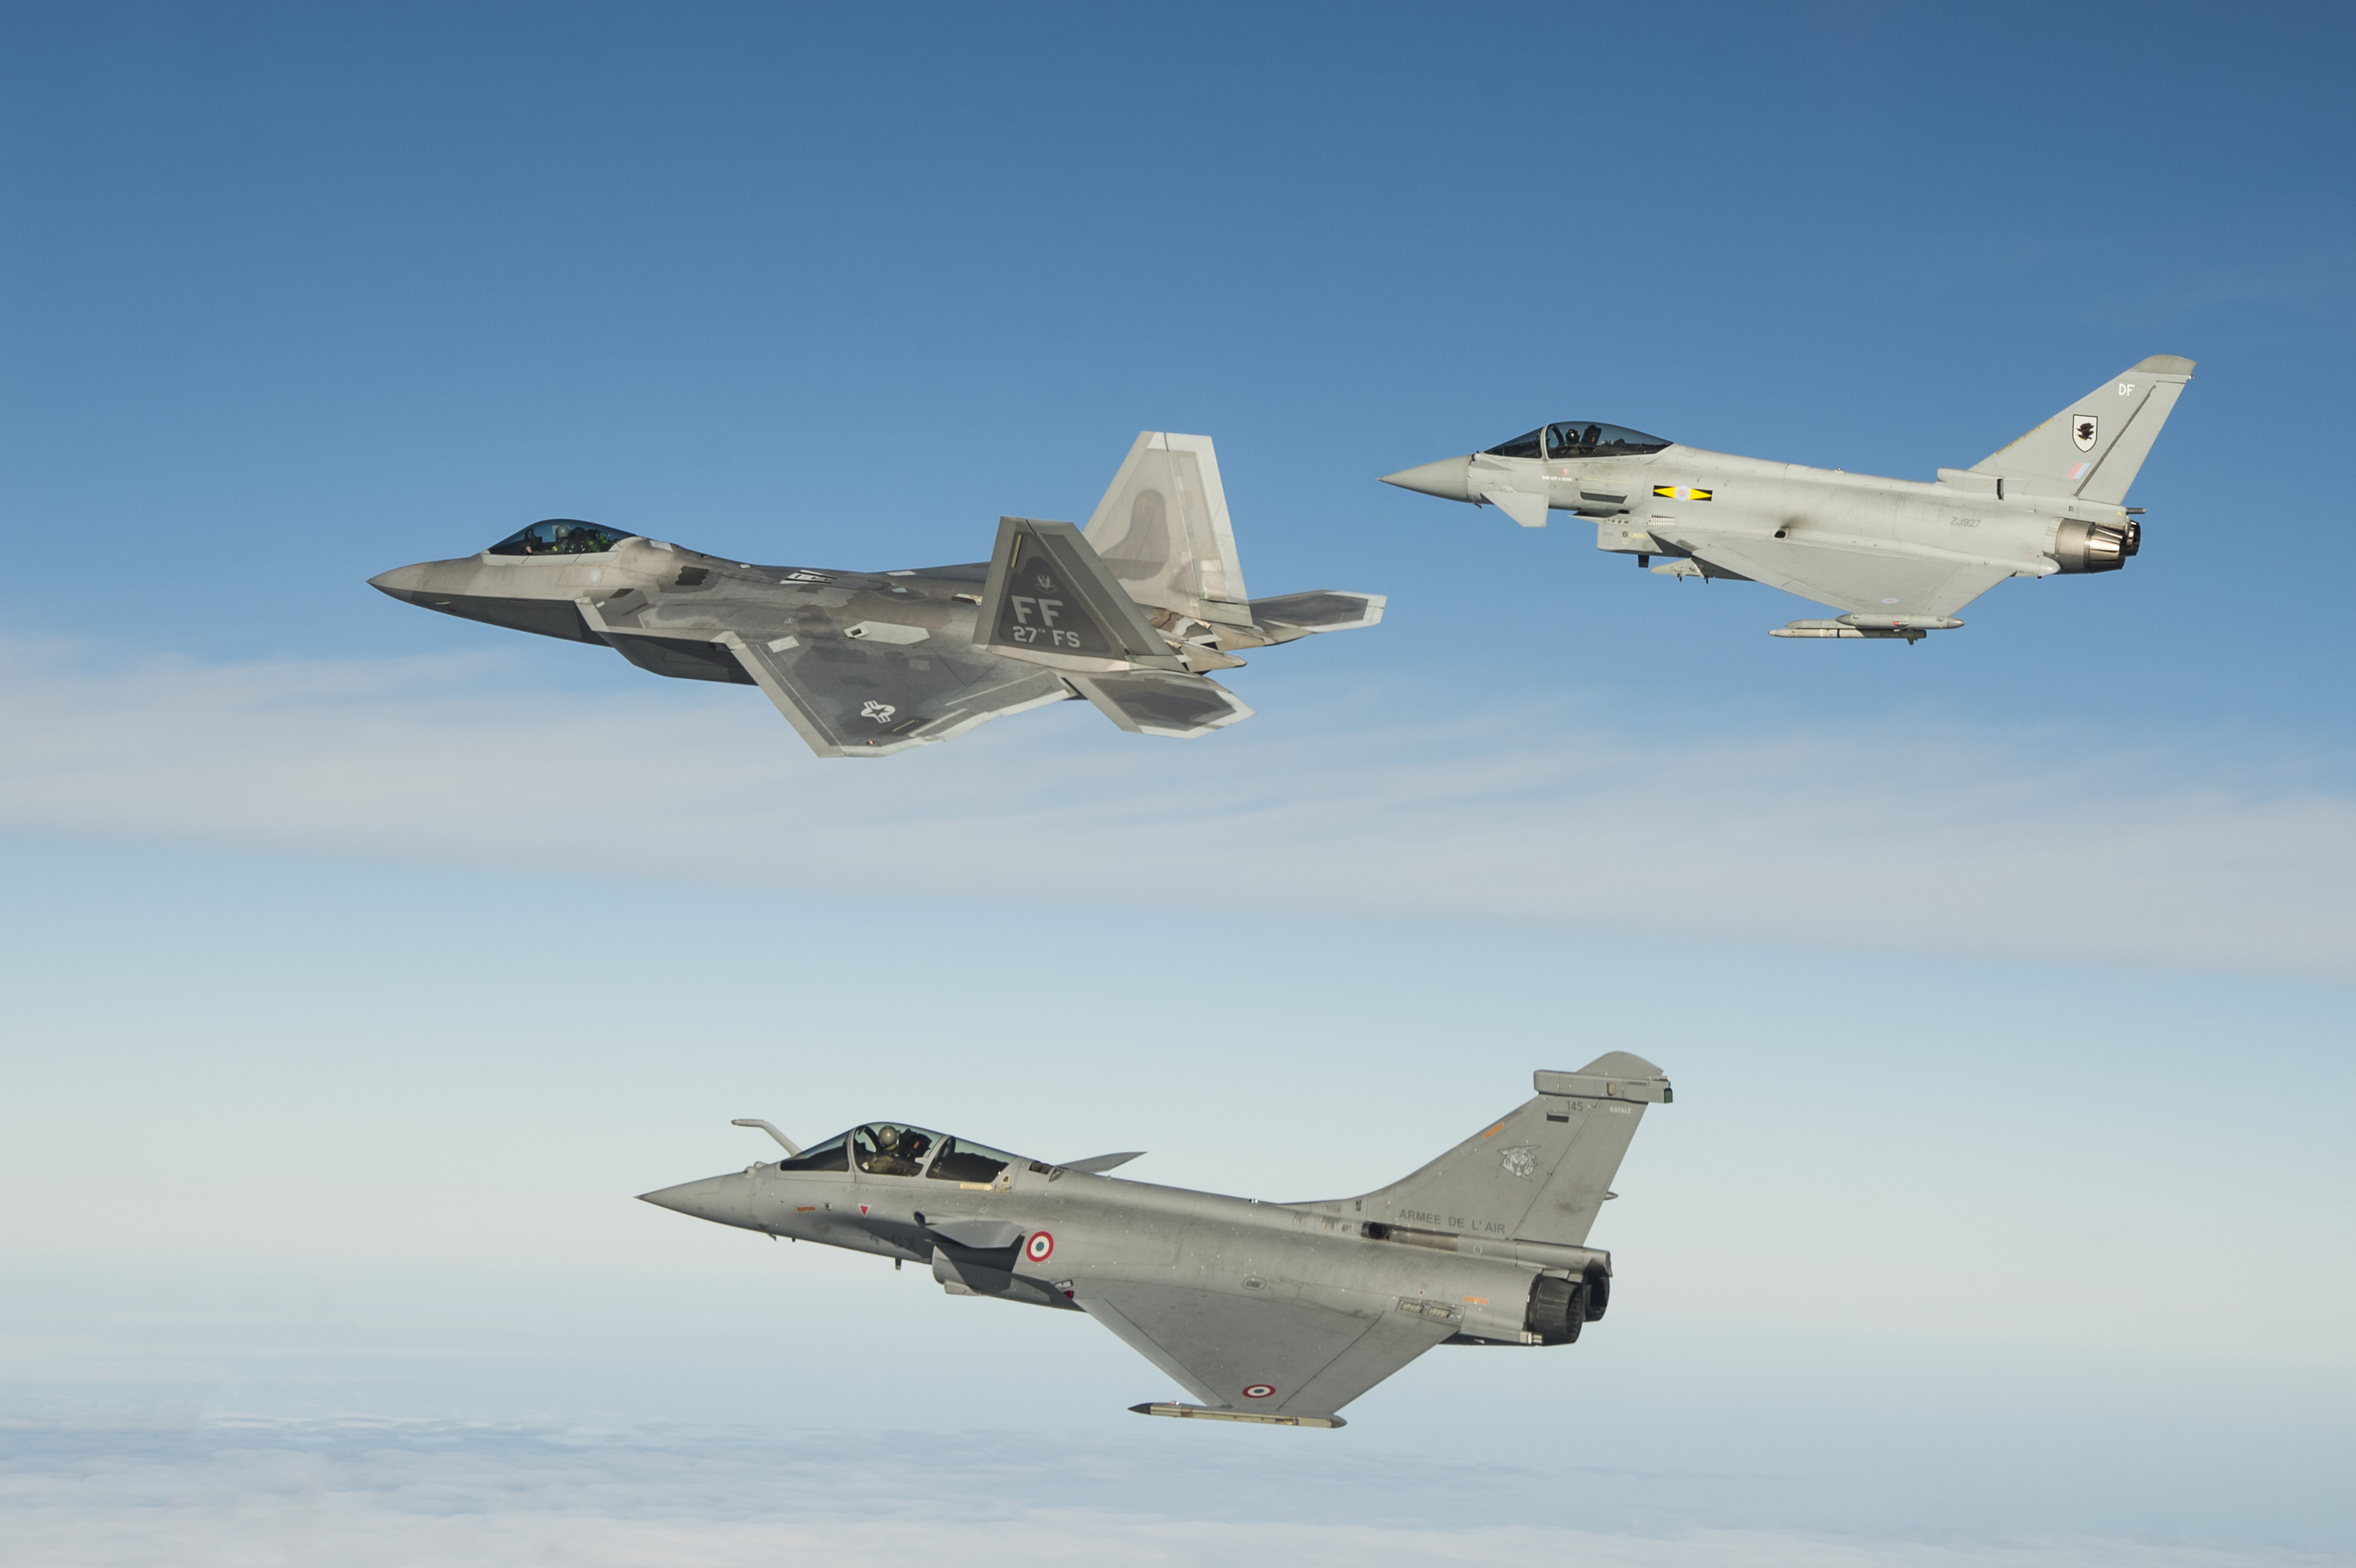 F 22 Typhoon Rafale Lessons From The Trilateral Wargame Raptor Engine Diagram Breaking Defense Industry News Analysis And Commentary